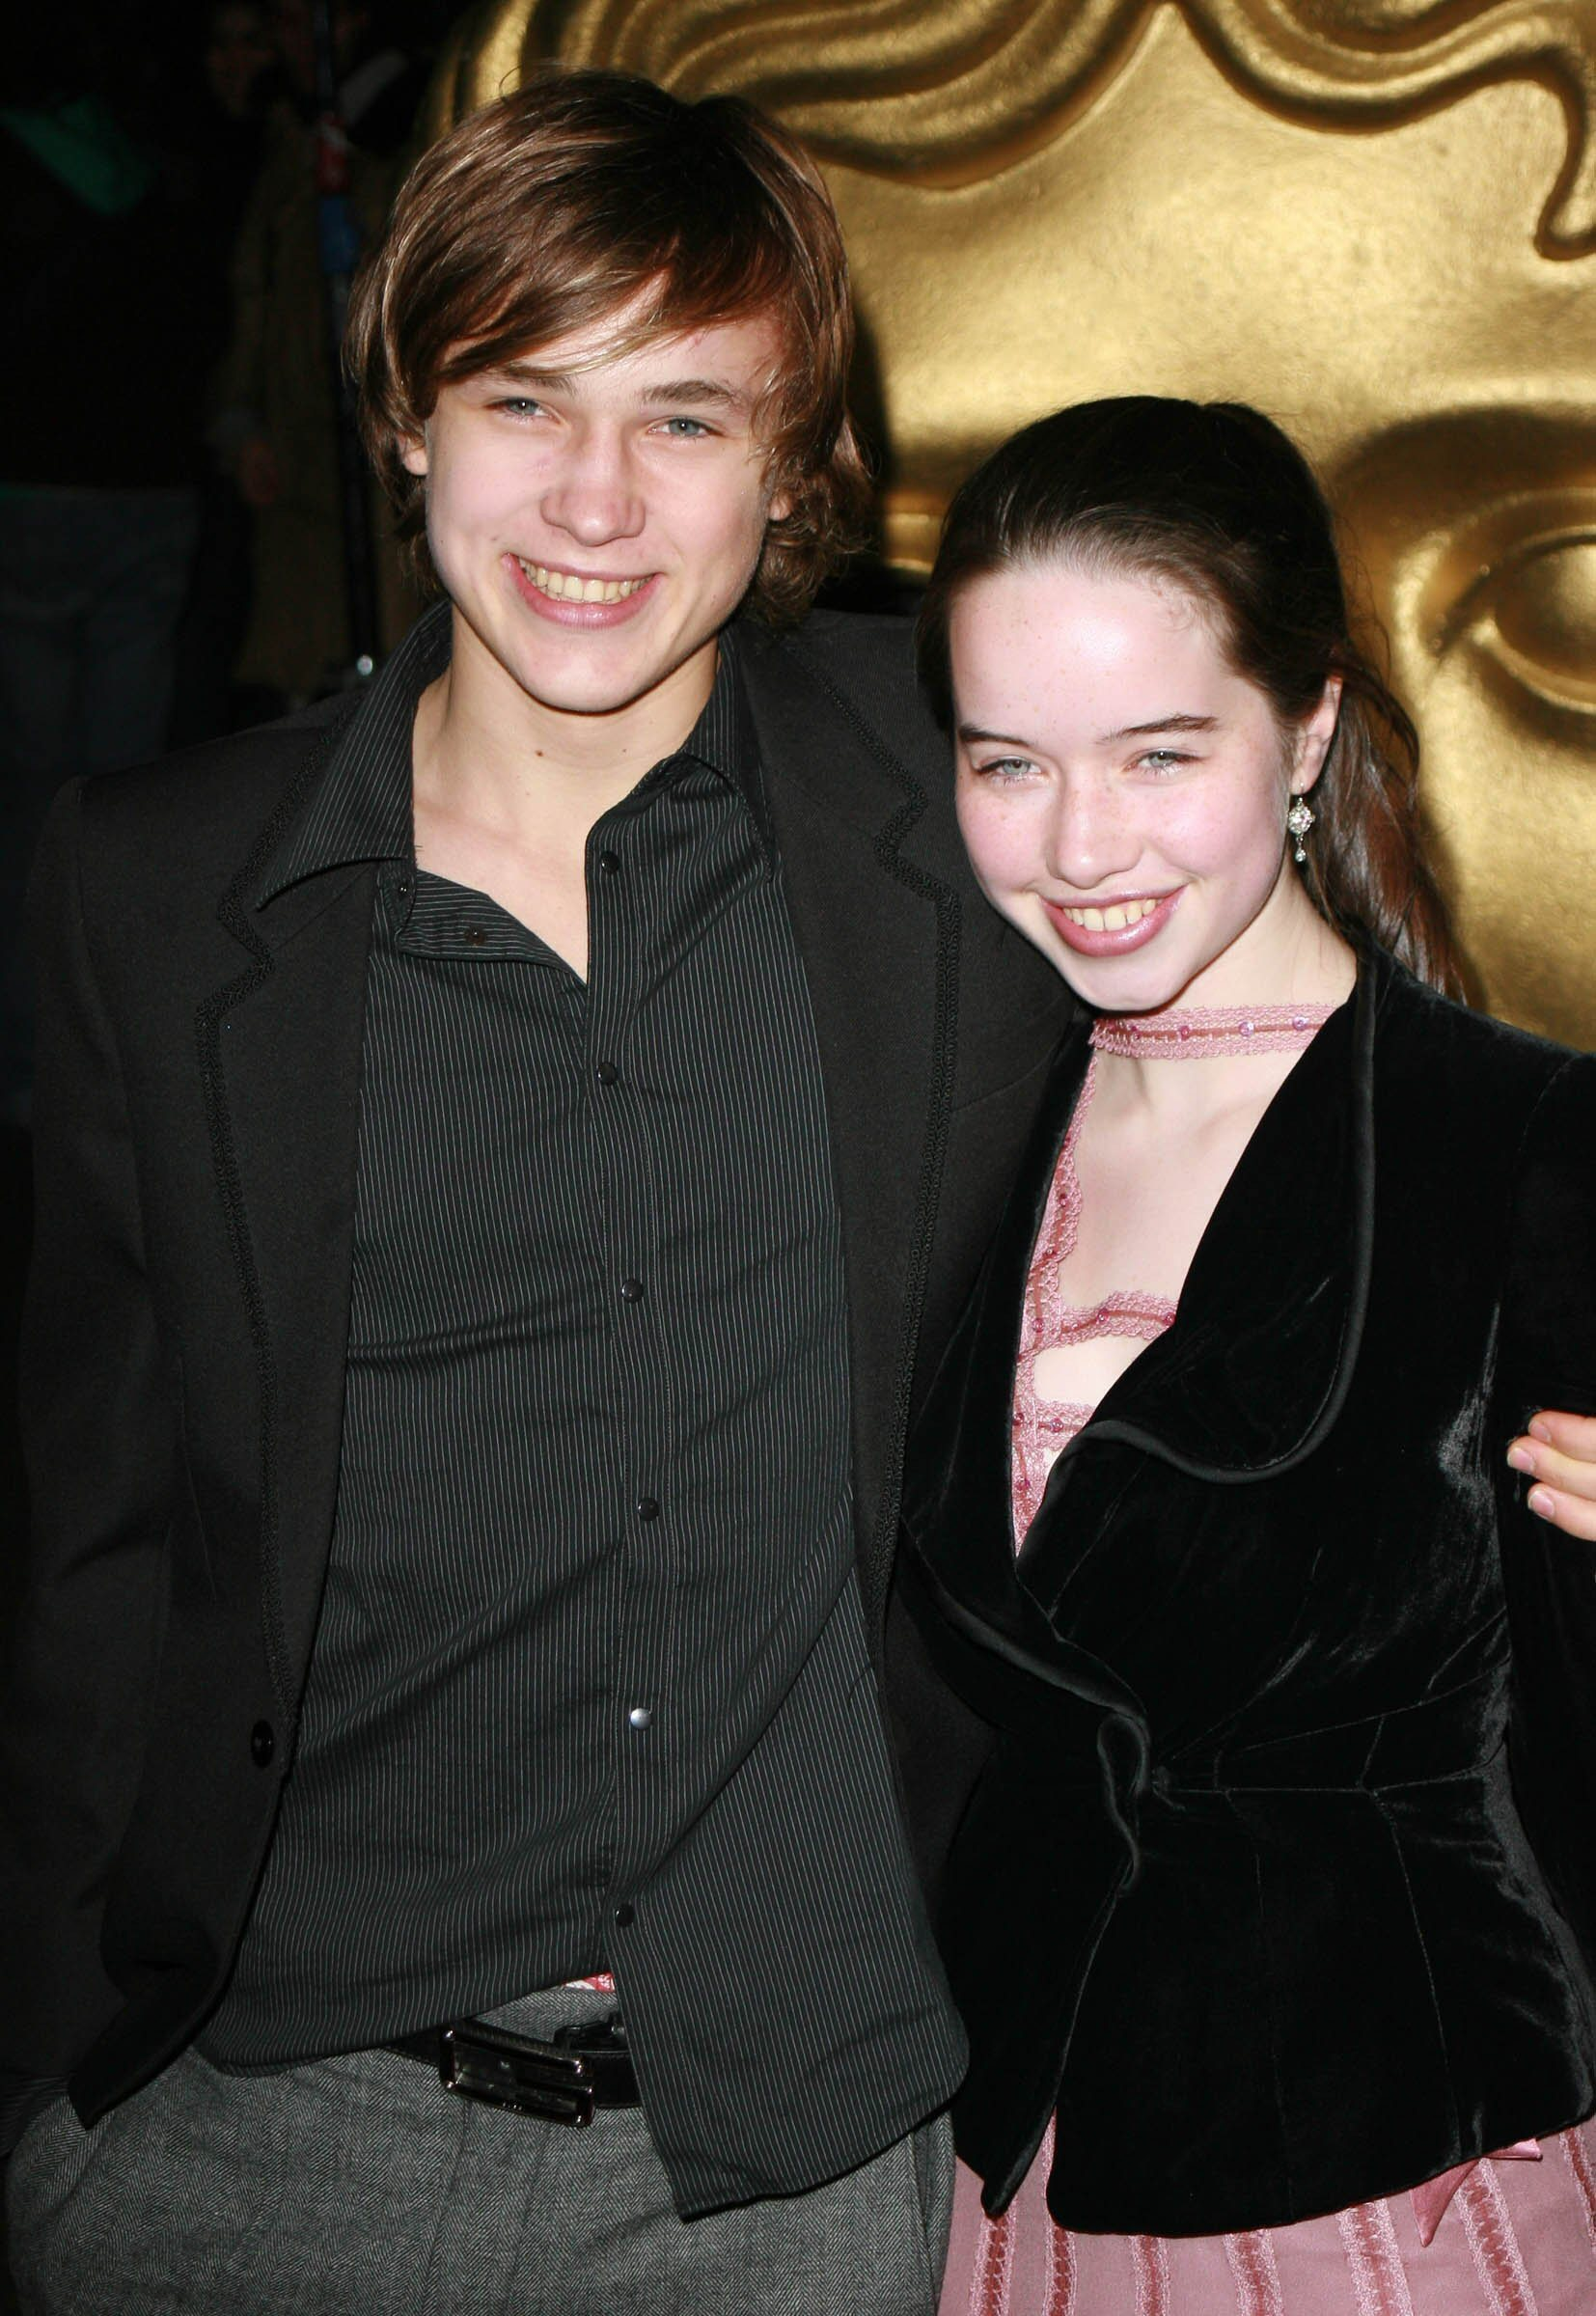 Wow! anna popplewell and william pacaran?